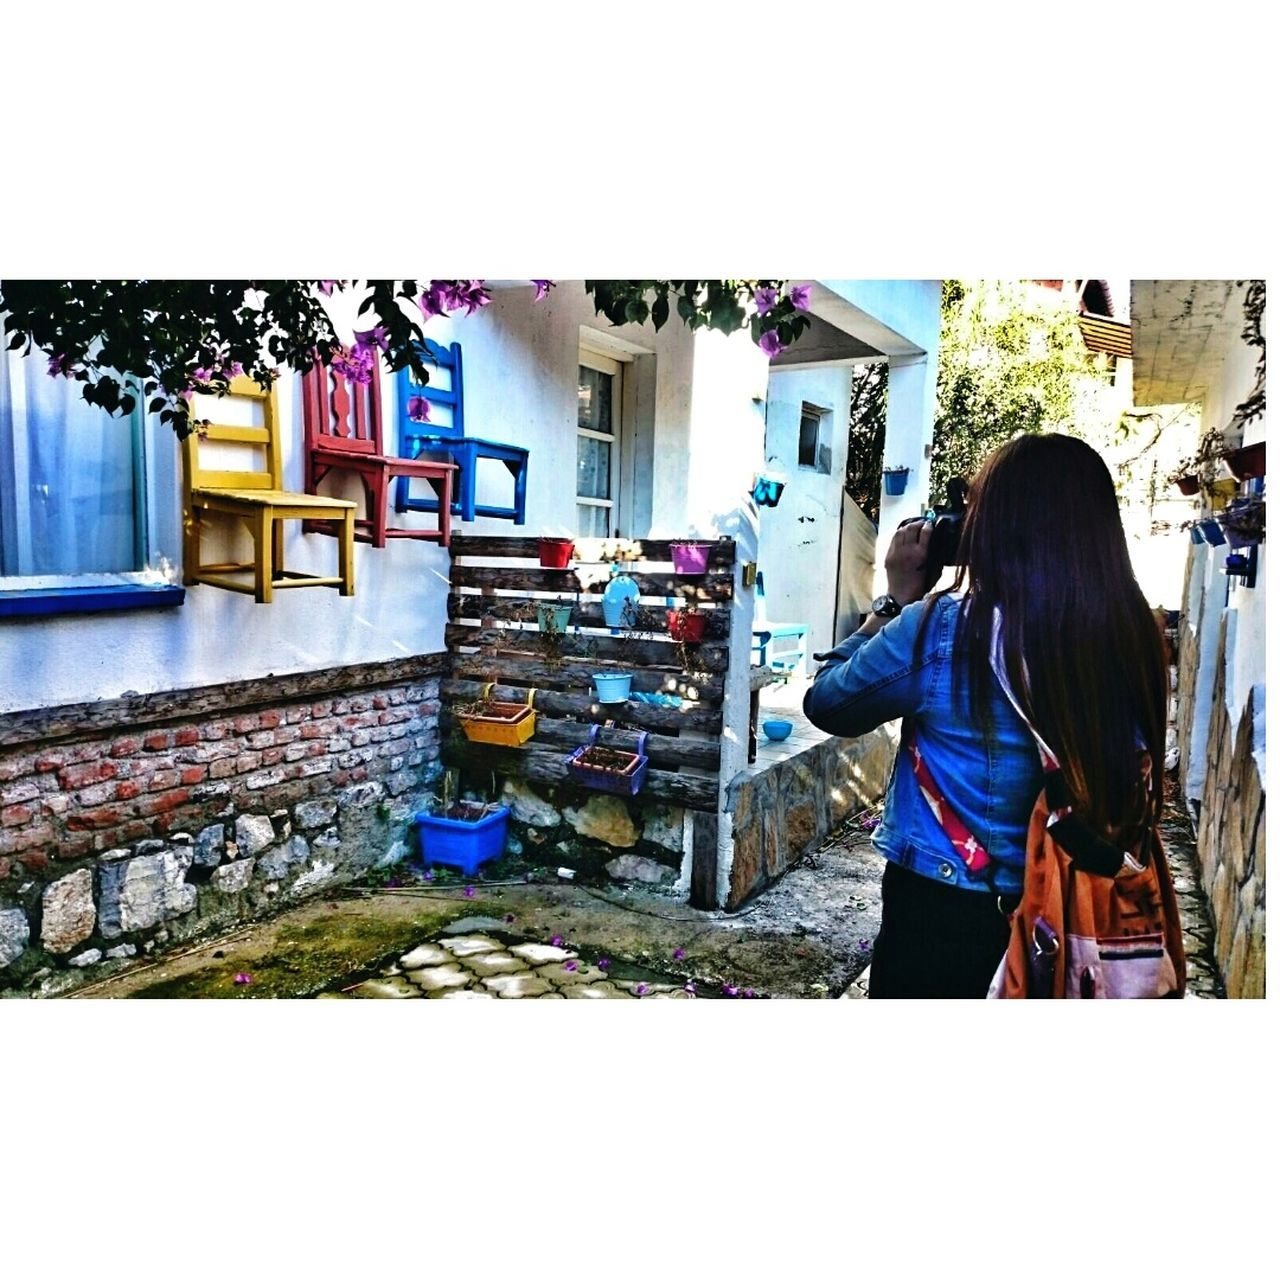 Snapshot Canonphotography CaptureTheMoment Canon Canon600D Manual TuğçeAkdeniz Beauty Women Dalyan